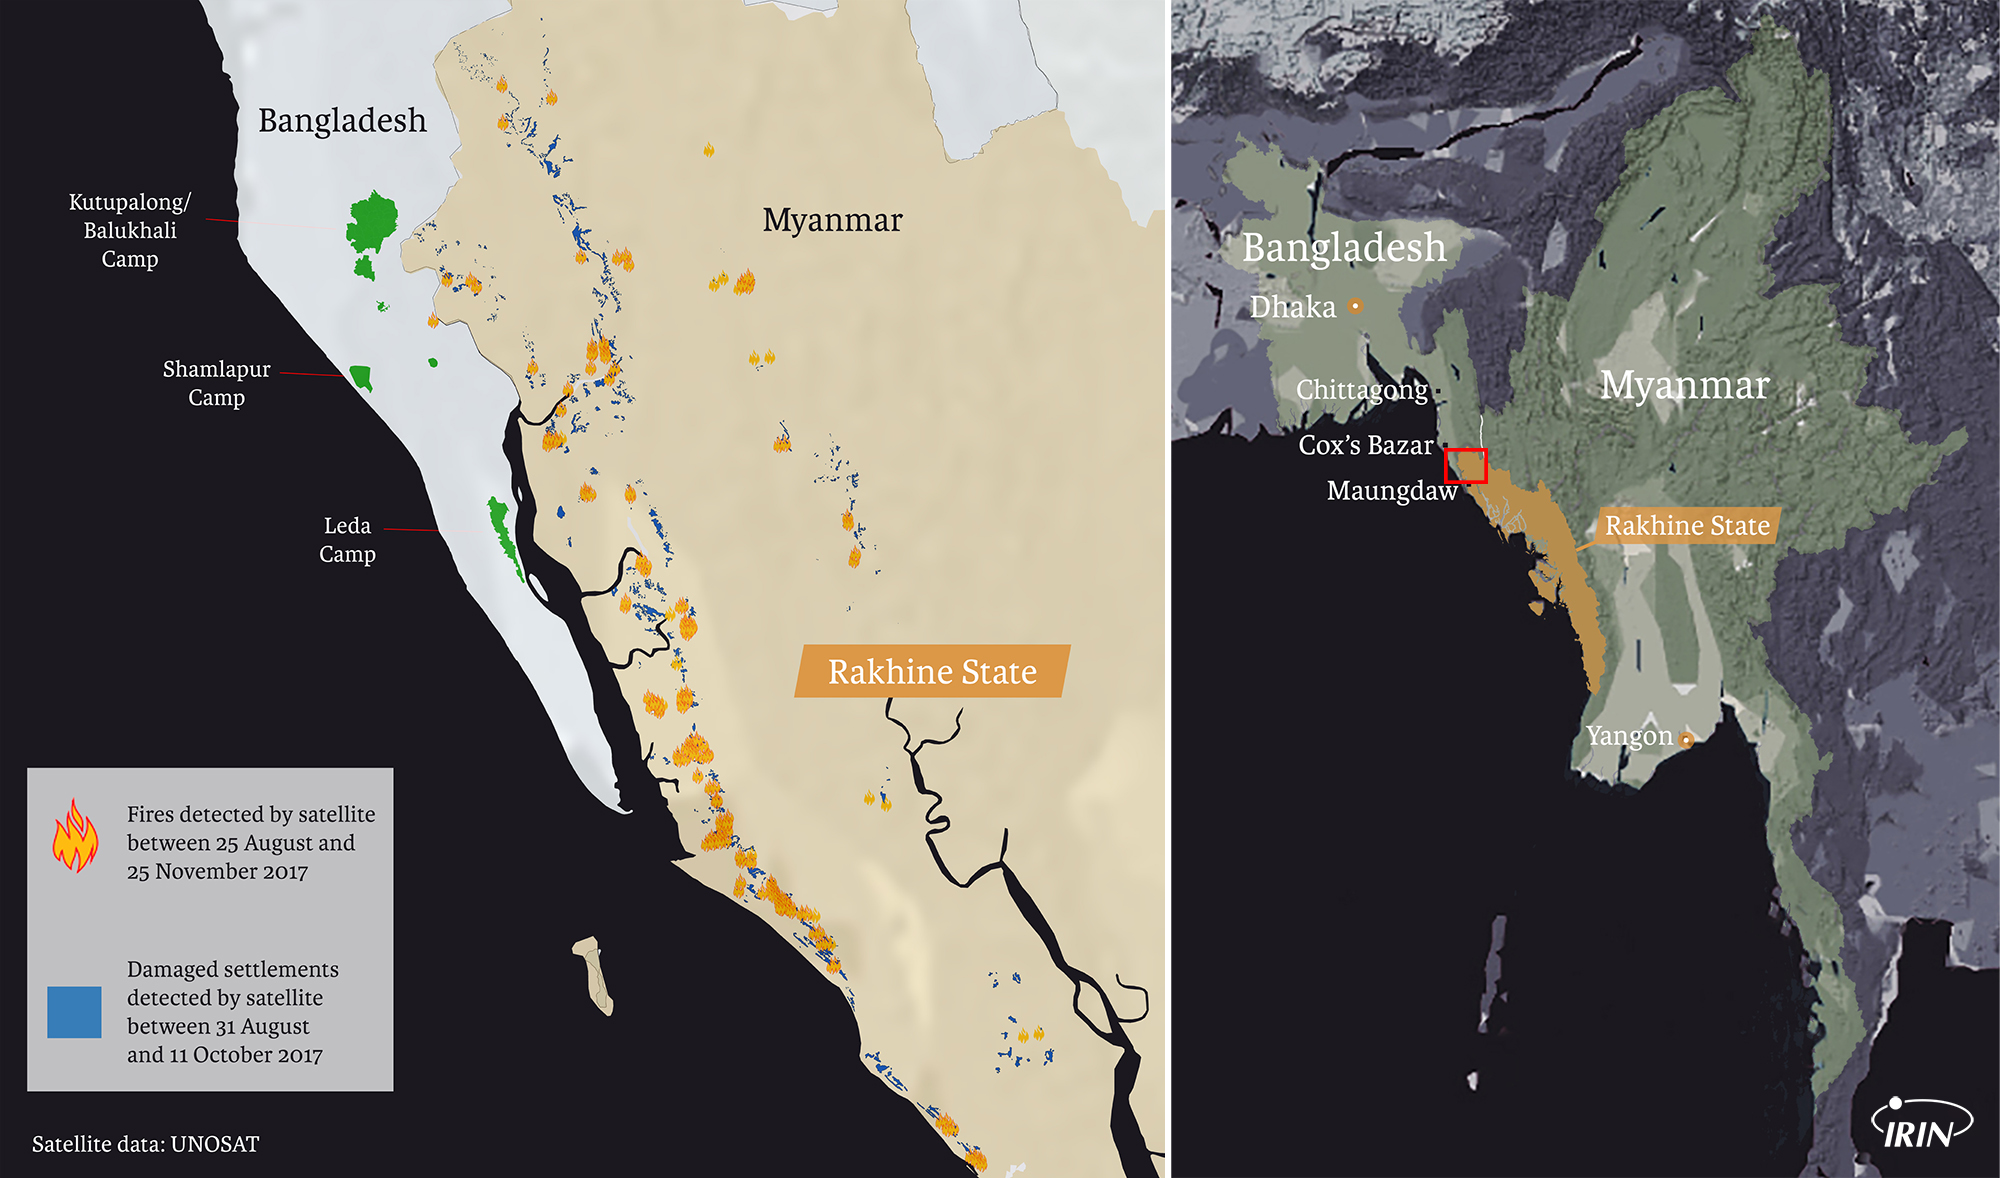 Map of Myanmar and Bangladesh including Rohingya camps, the Rakhine state, as well as satellite damage zone per UNOSAT